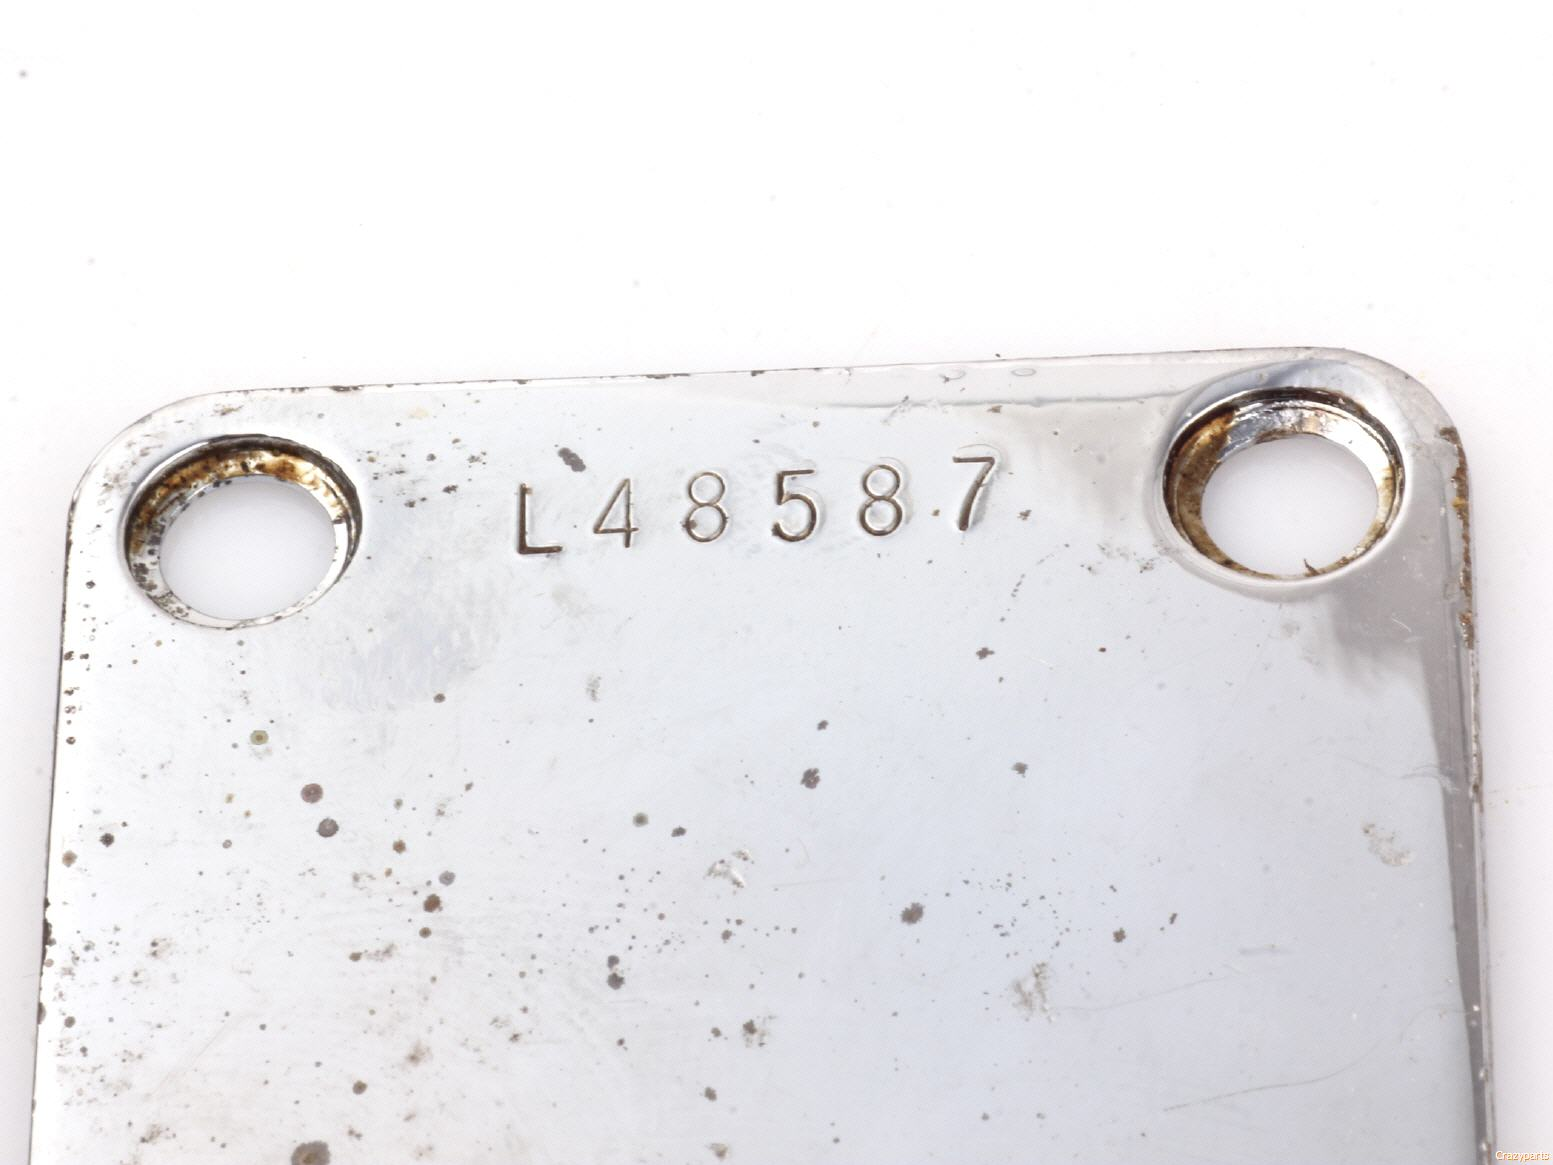 Neckplate with Serial Number